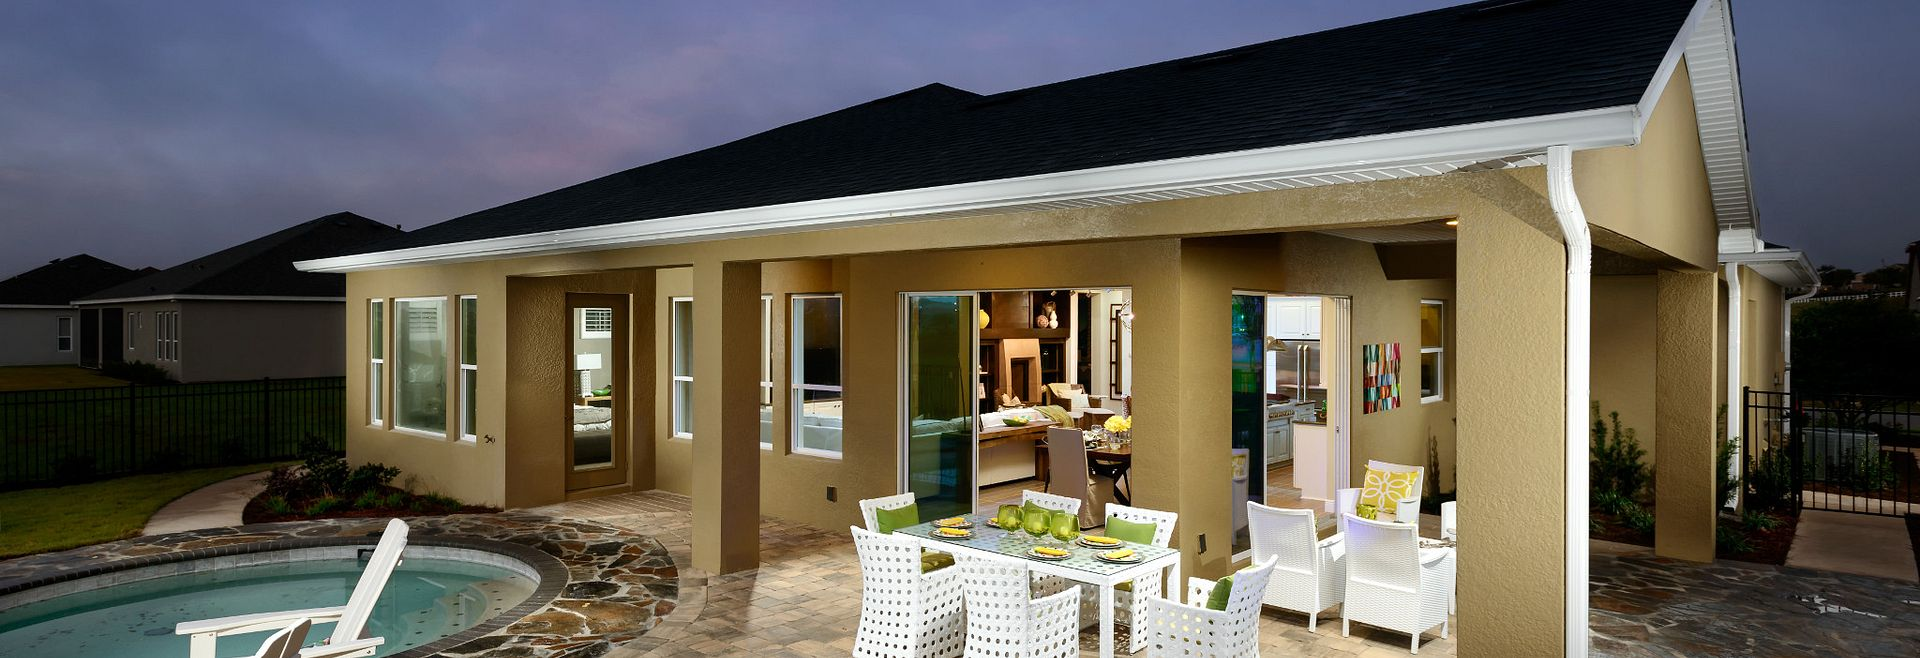 Trilogy Orlando by Shea Homes in Groveland, FL